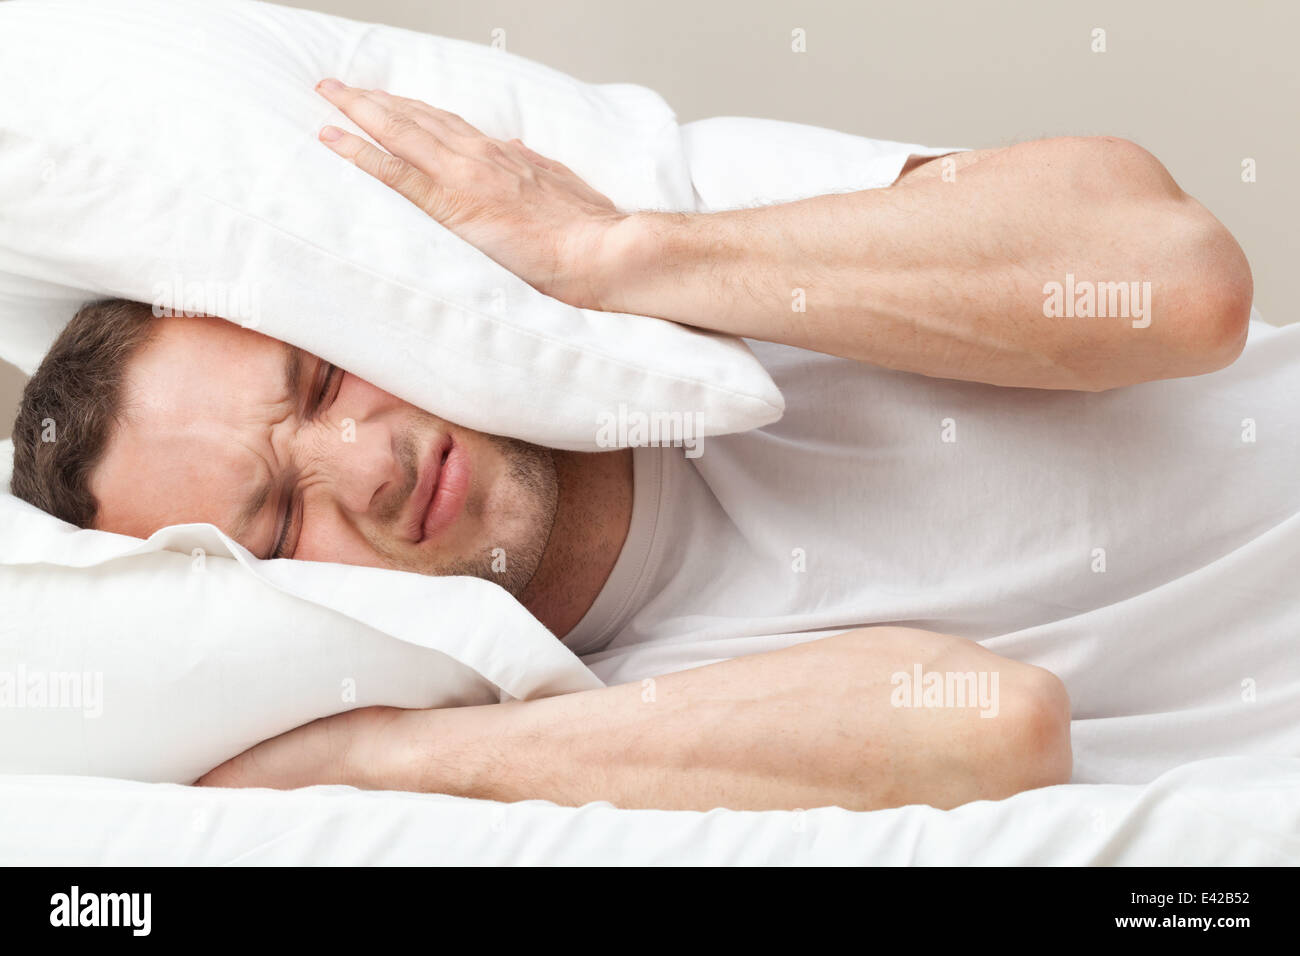 Portrait of dissatisfied Young Caucasian man in bed - Stock Image